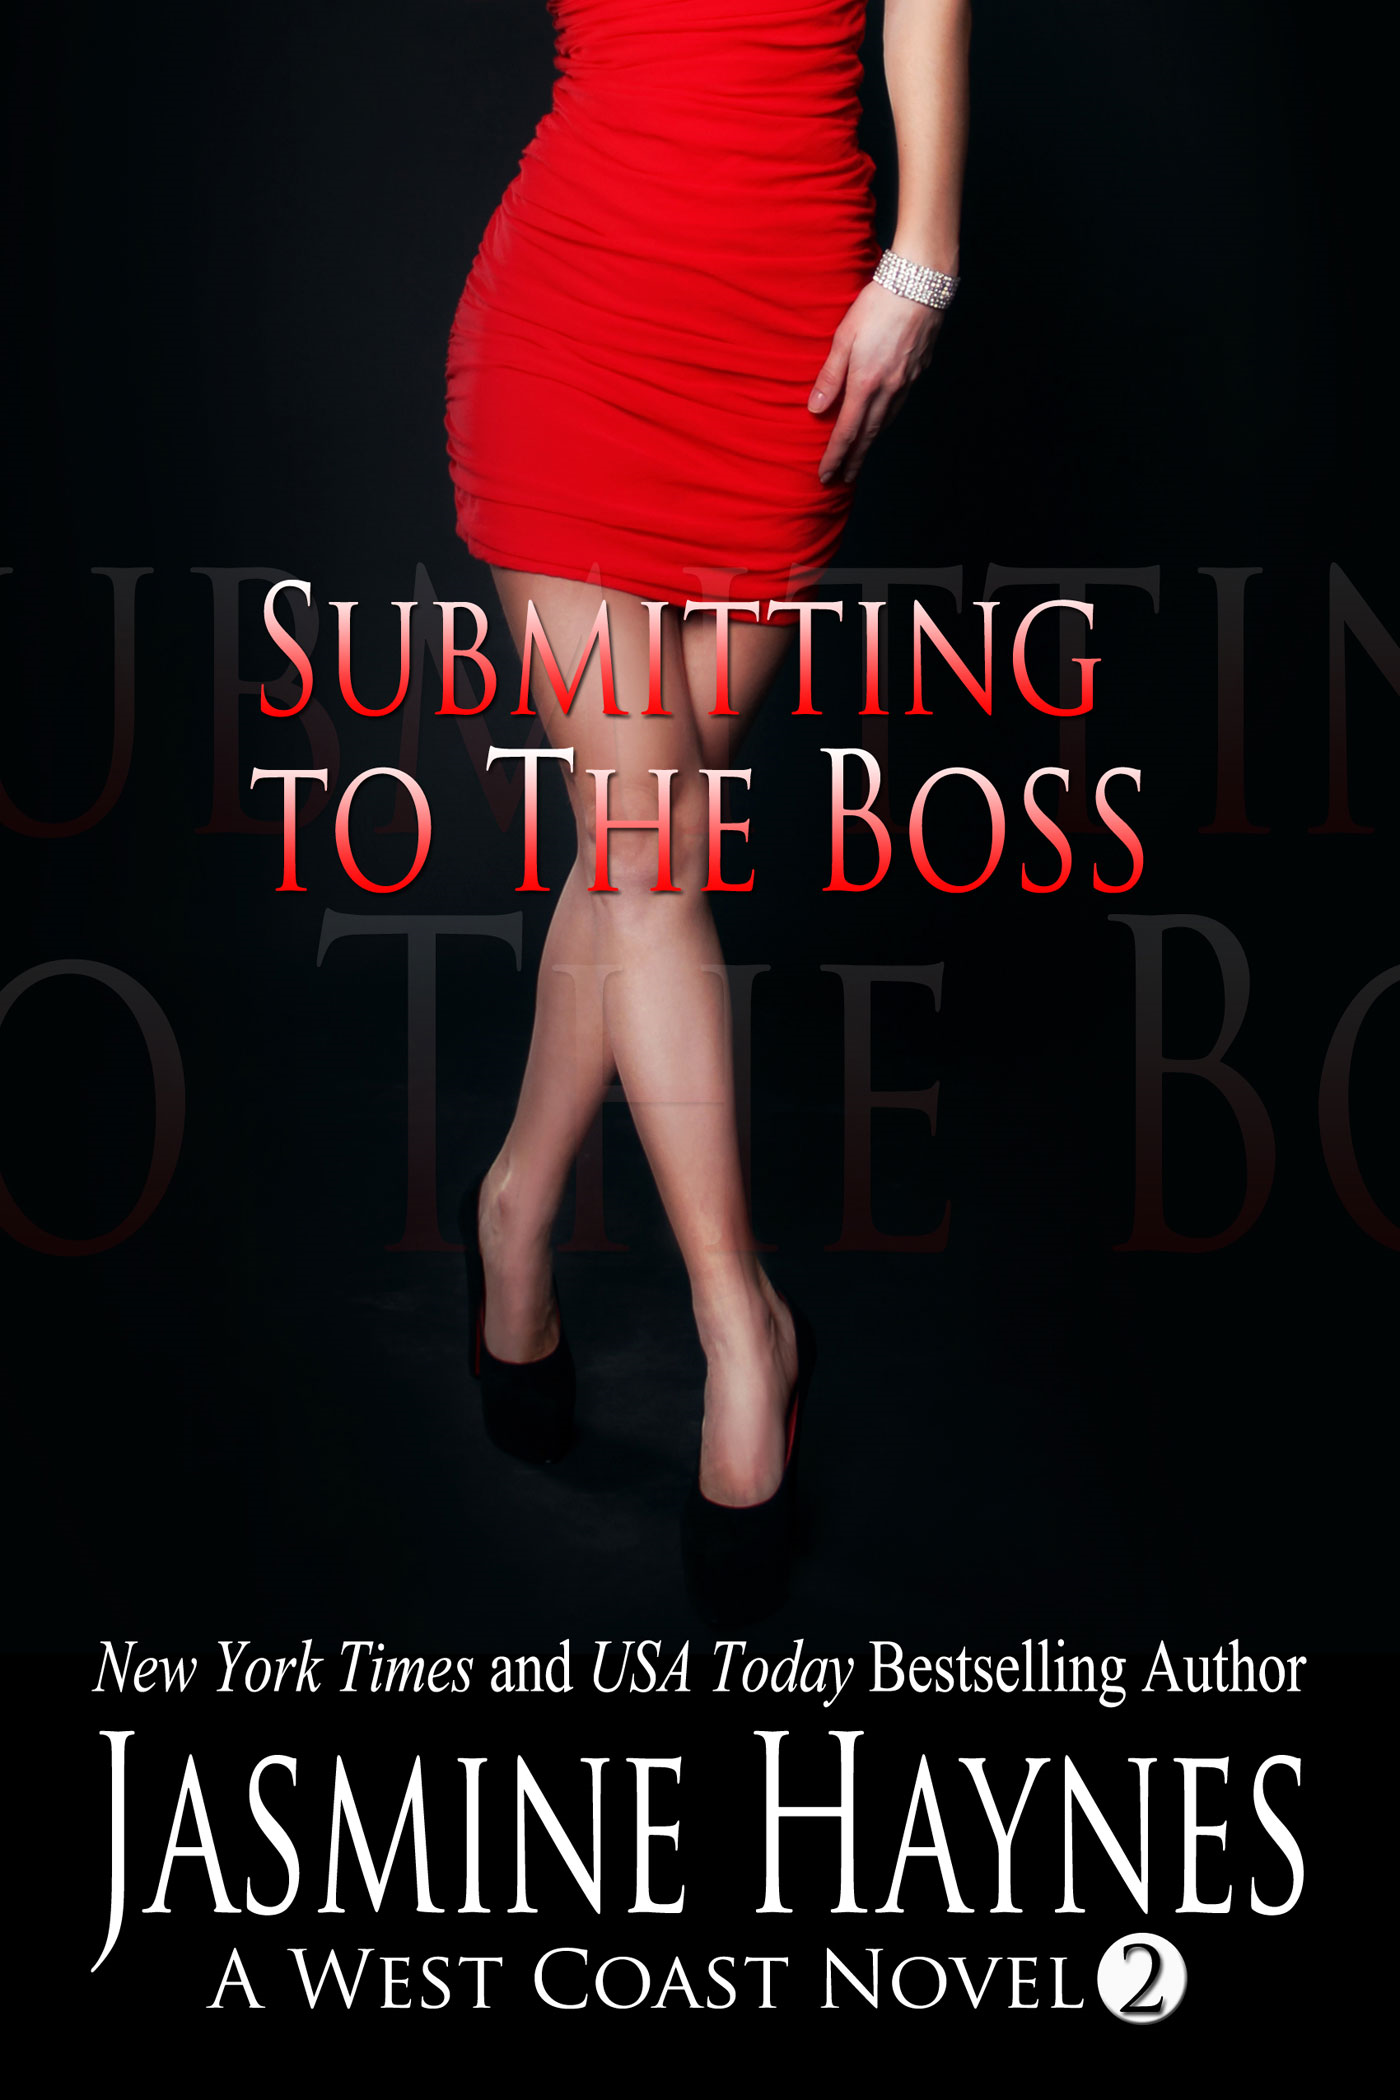 Jennifer Skully  Jasmine Haynes - Submitting to the Boss